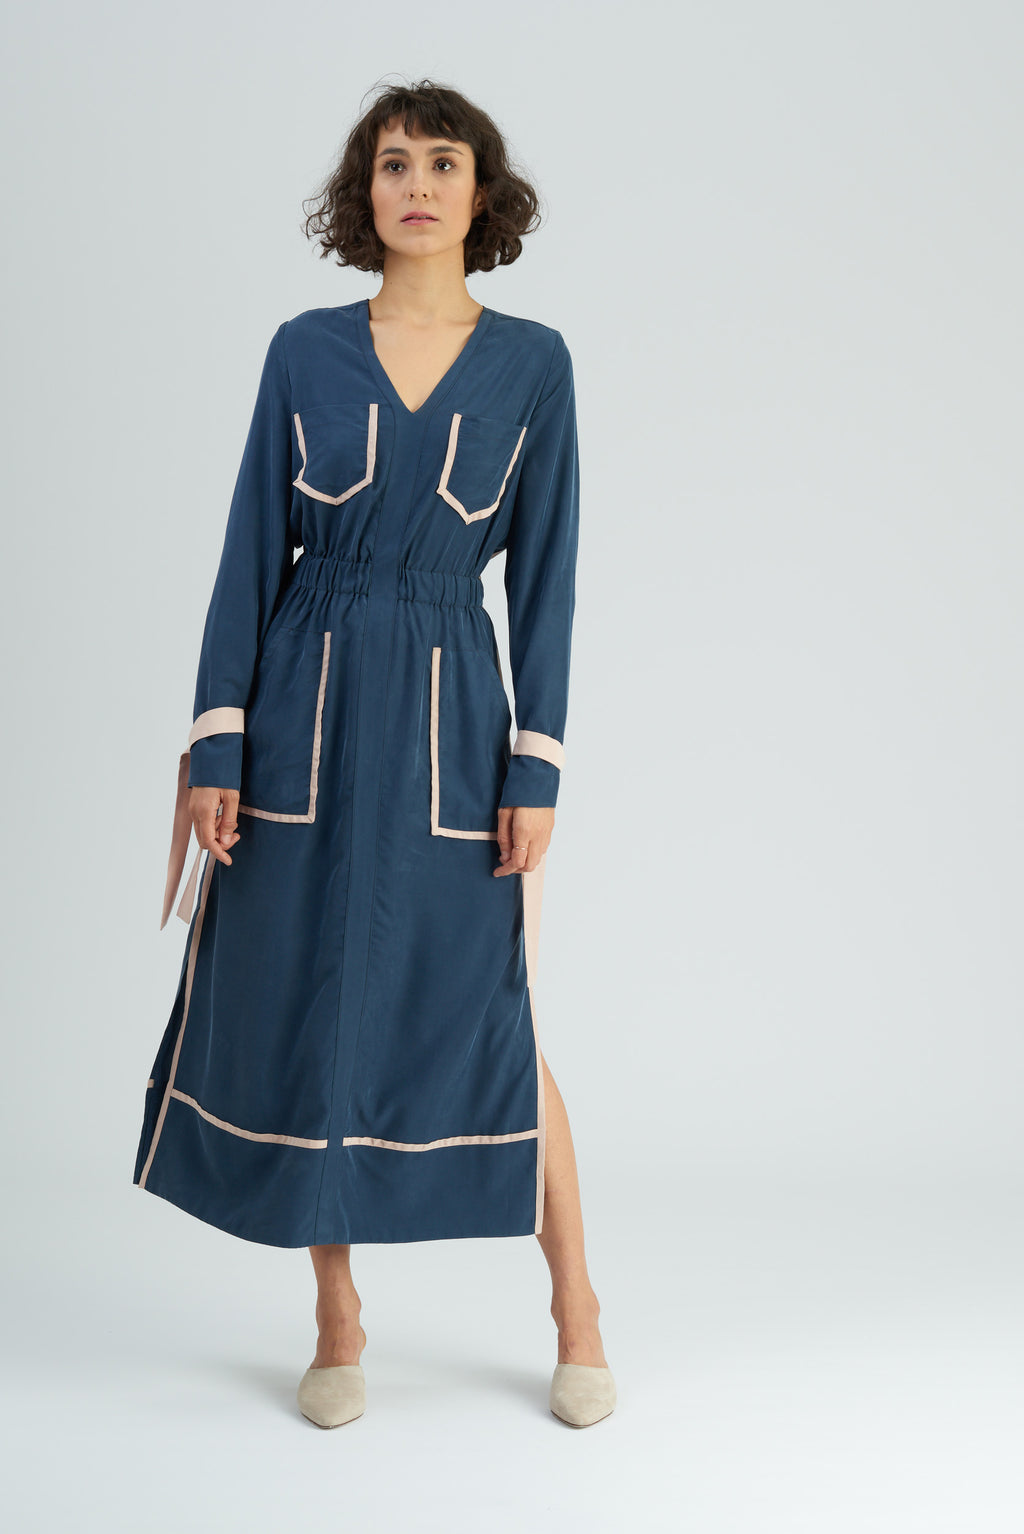 Babos Dark Navy Silky Contrast Shirtdress